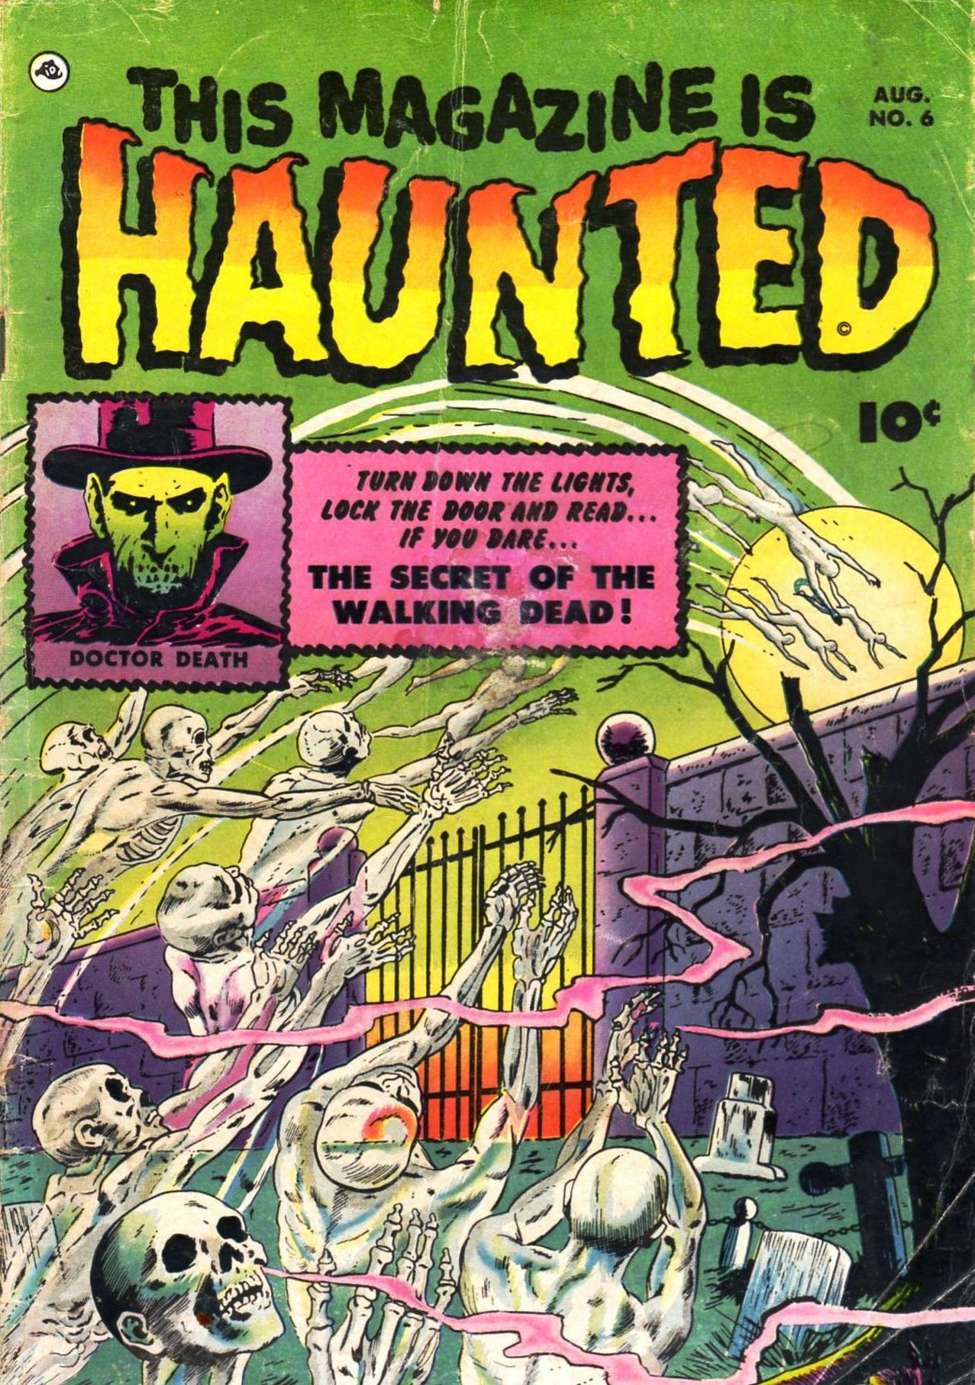 Comic Book Cover For This Magazine Is Haunted #6 - Version 2